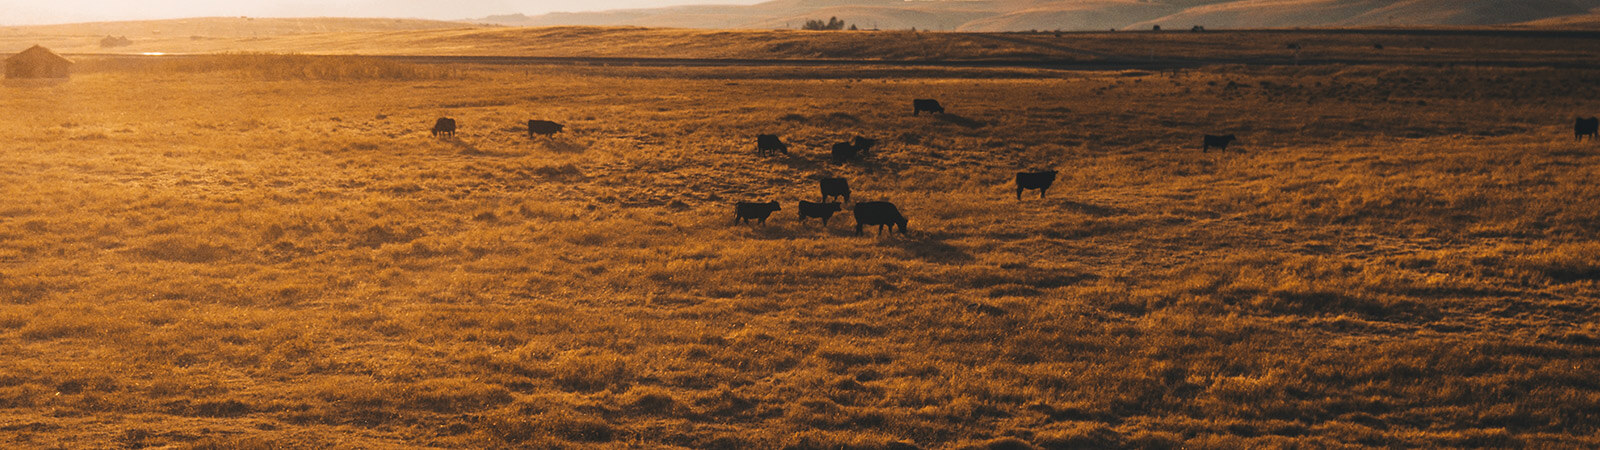 Cattle farming and Investing Webinar